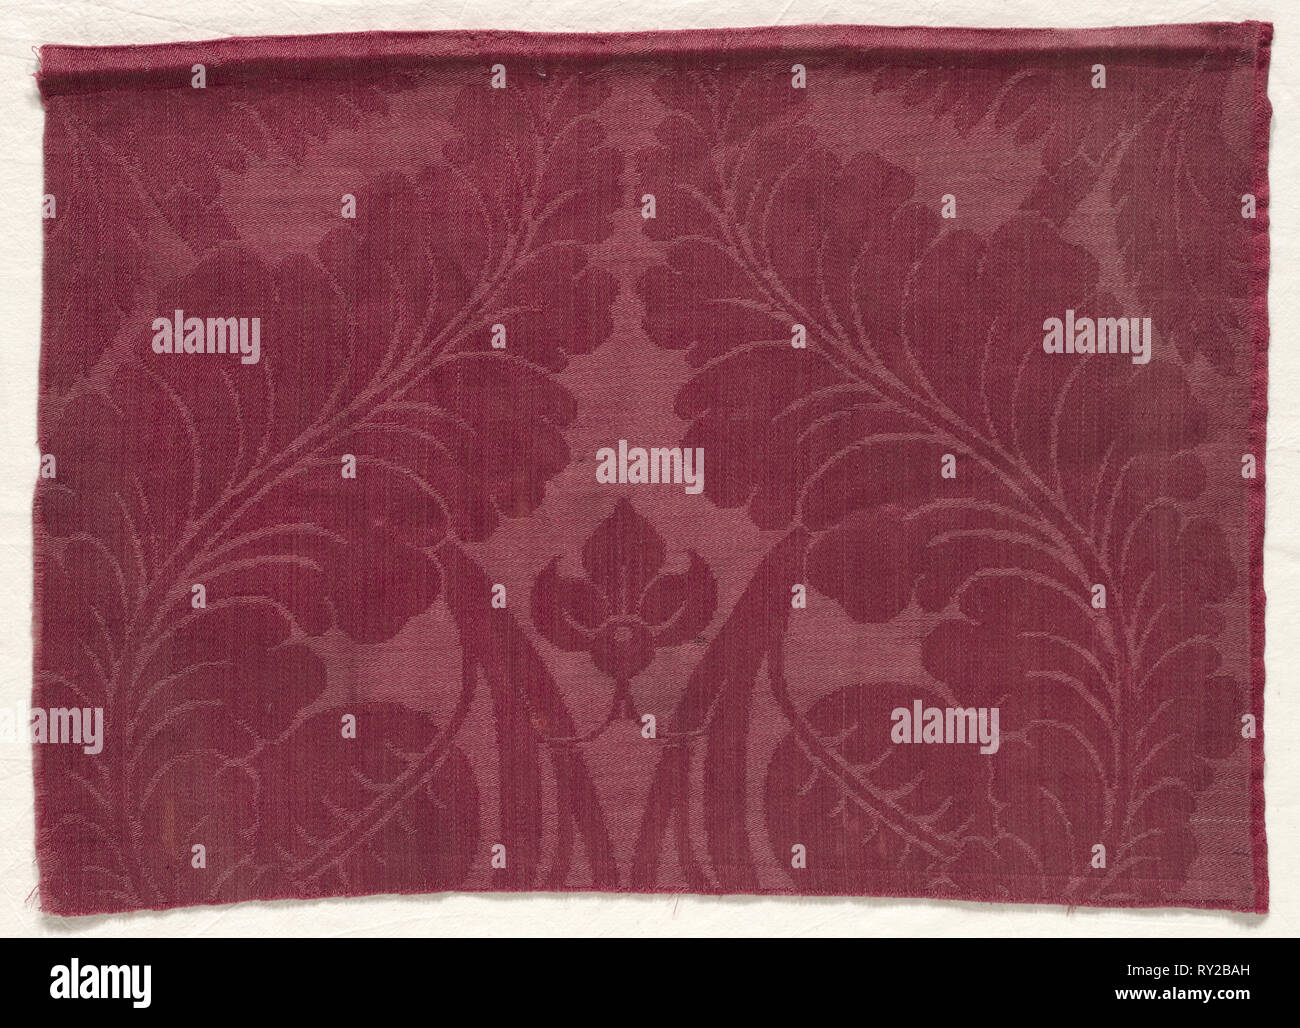 Damask with Leaf and Floral Design, 1700s - 1800s. England, 18th-19th century. Damask; wool; overall: 36.4 x 50.9 cm (14 5/16 x 20 1/16 in - Stock Image